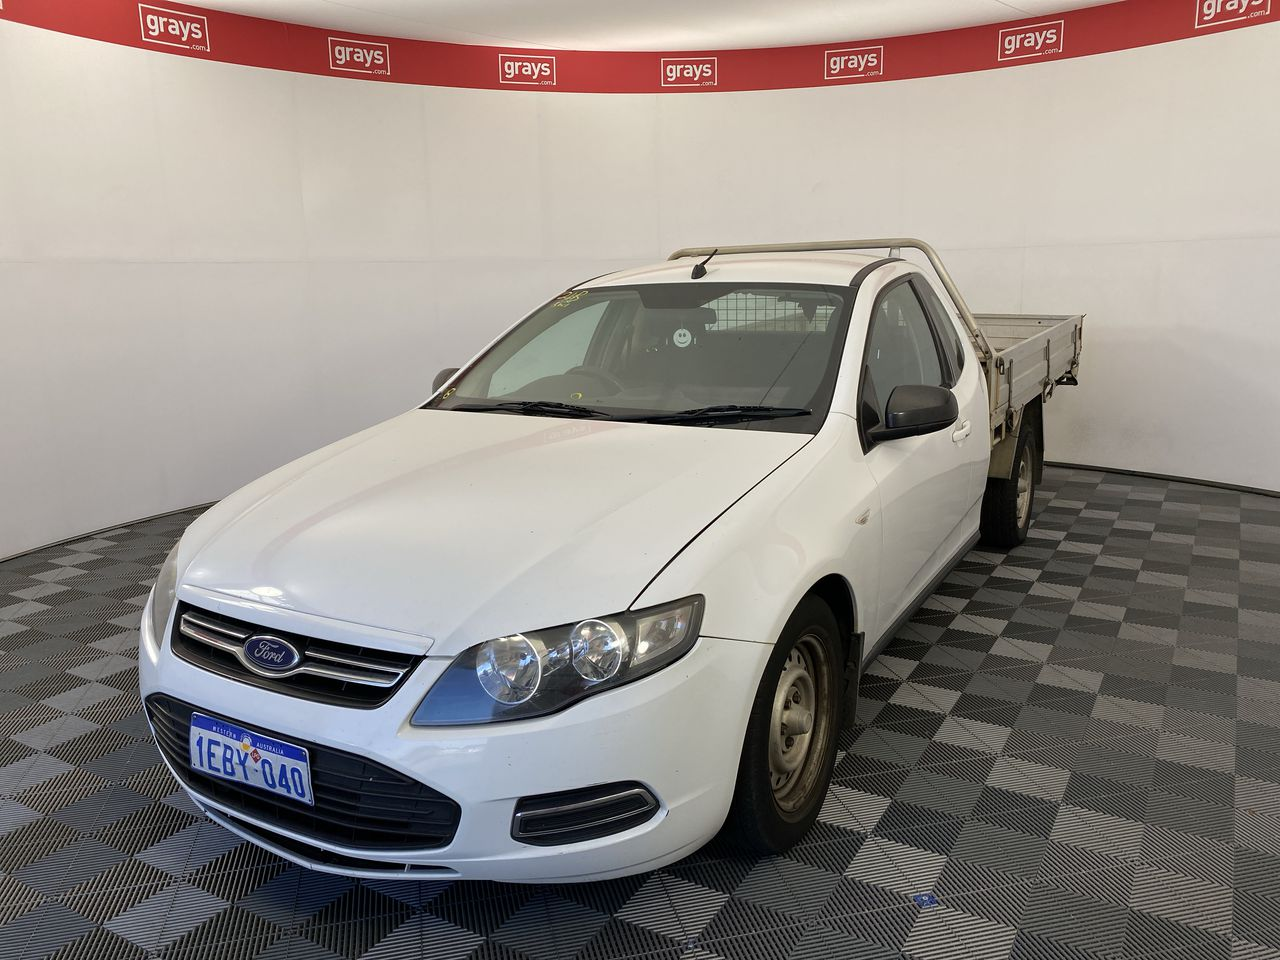 2012 Ford Falcon (LPI) FG II Automatic Cab Chassis